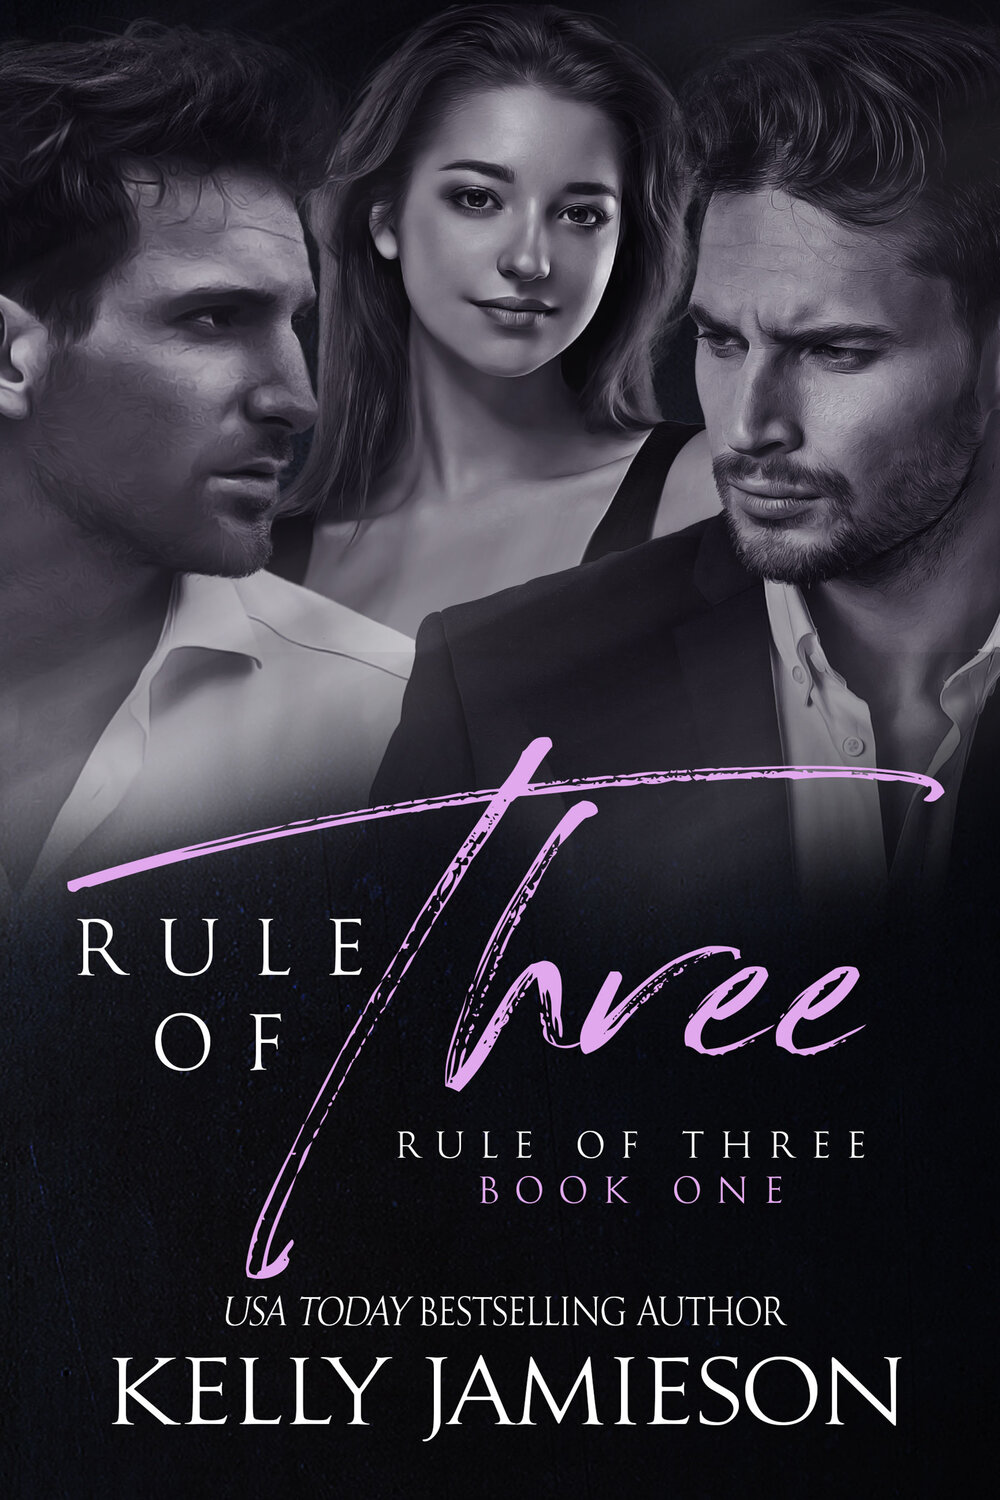 Kelly Jamieson Rule of Three Rule of Three 1.jpg